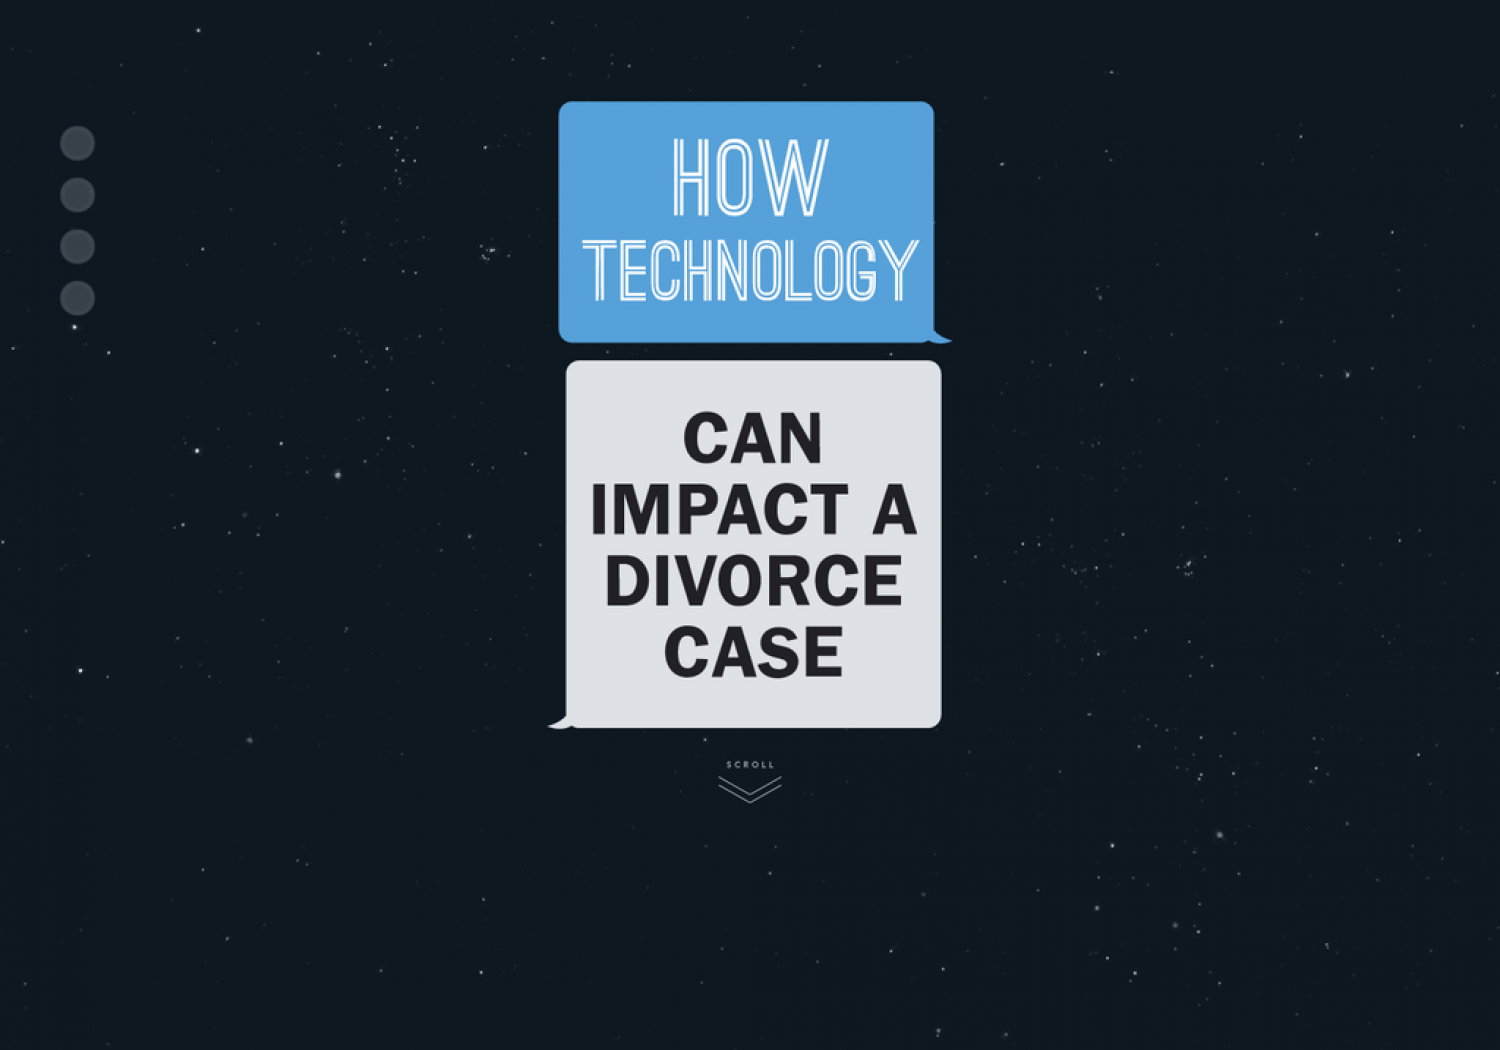 How Technology Can Impact a Divorce Case Infographic